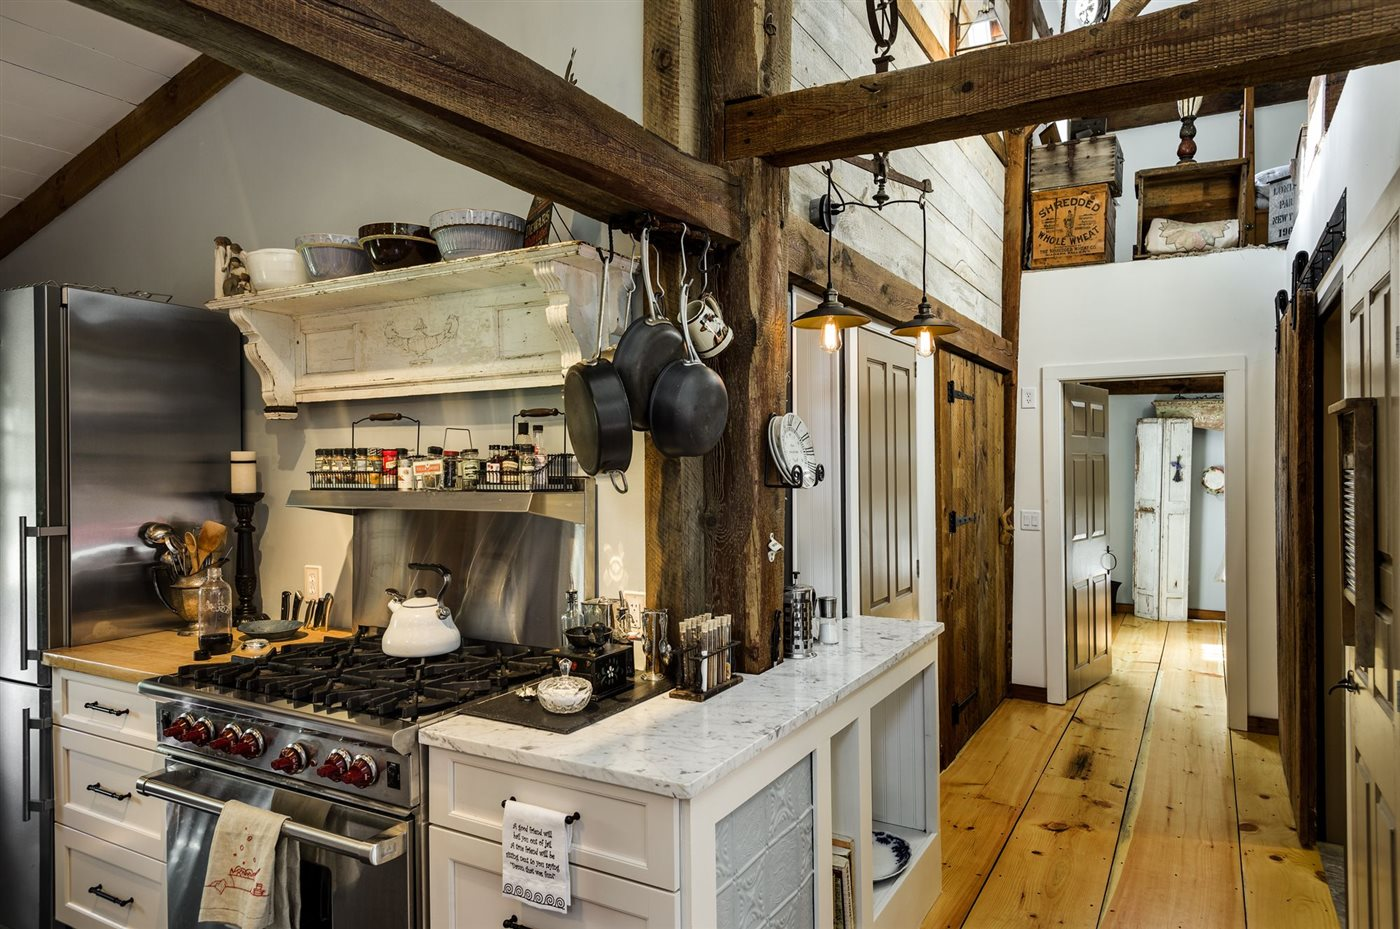 kitchen with marble countertop and wooden truss and columns in renovated barn